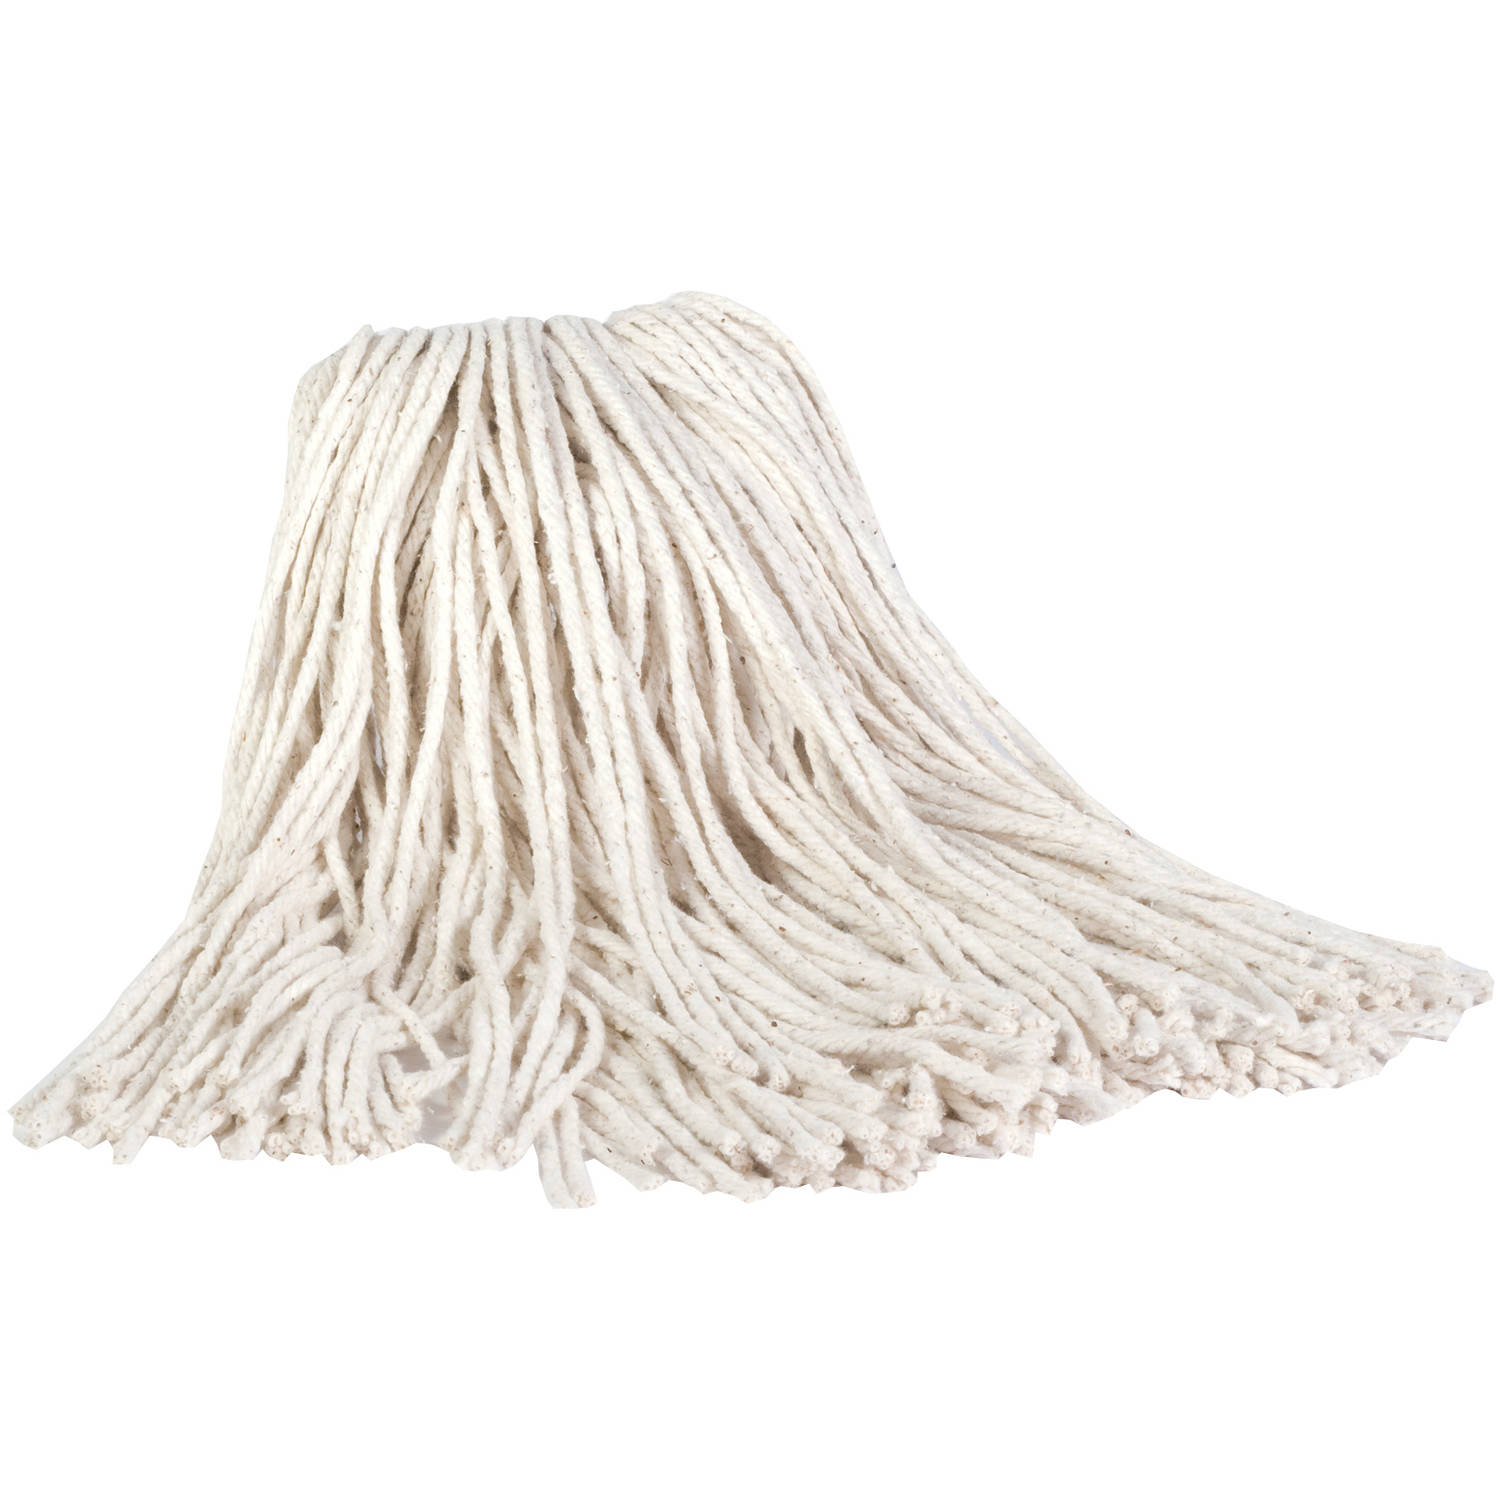 20oz Cotton 4-Ply Wet Mop Head by Dqb Industries